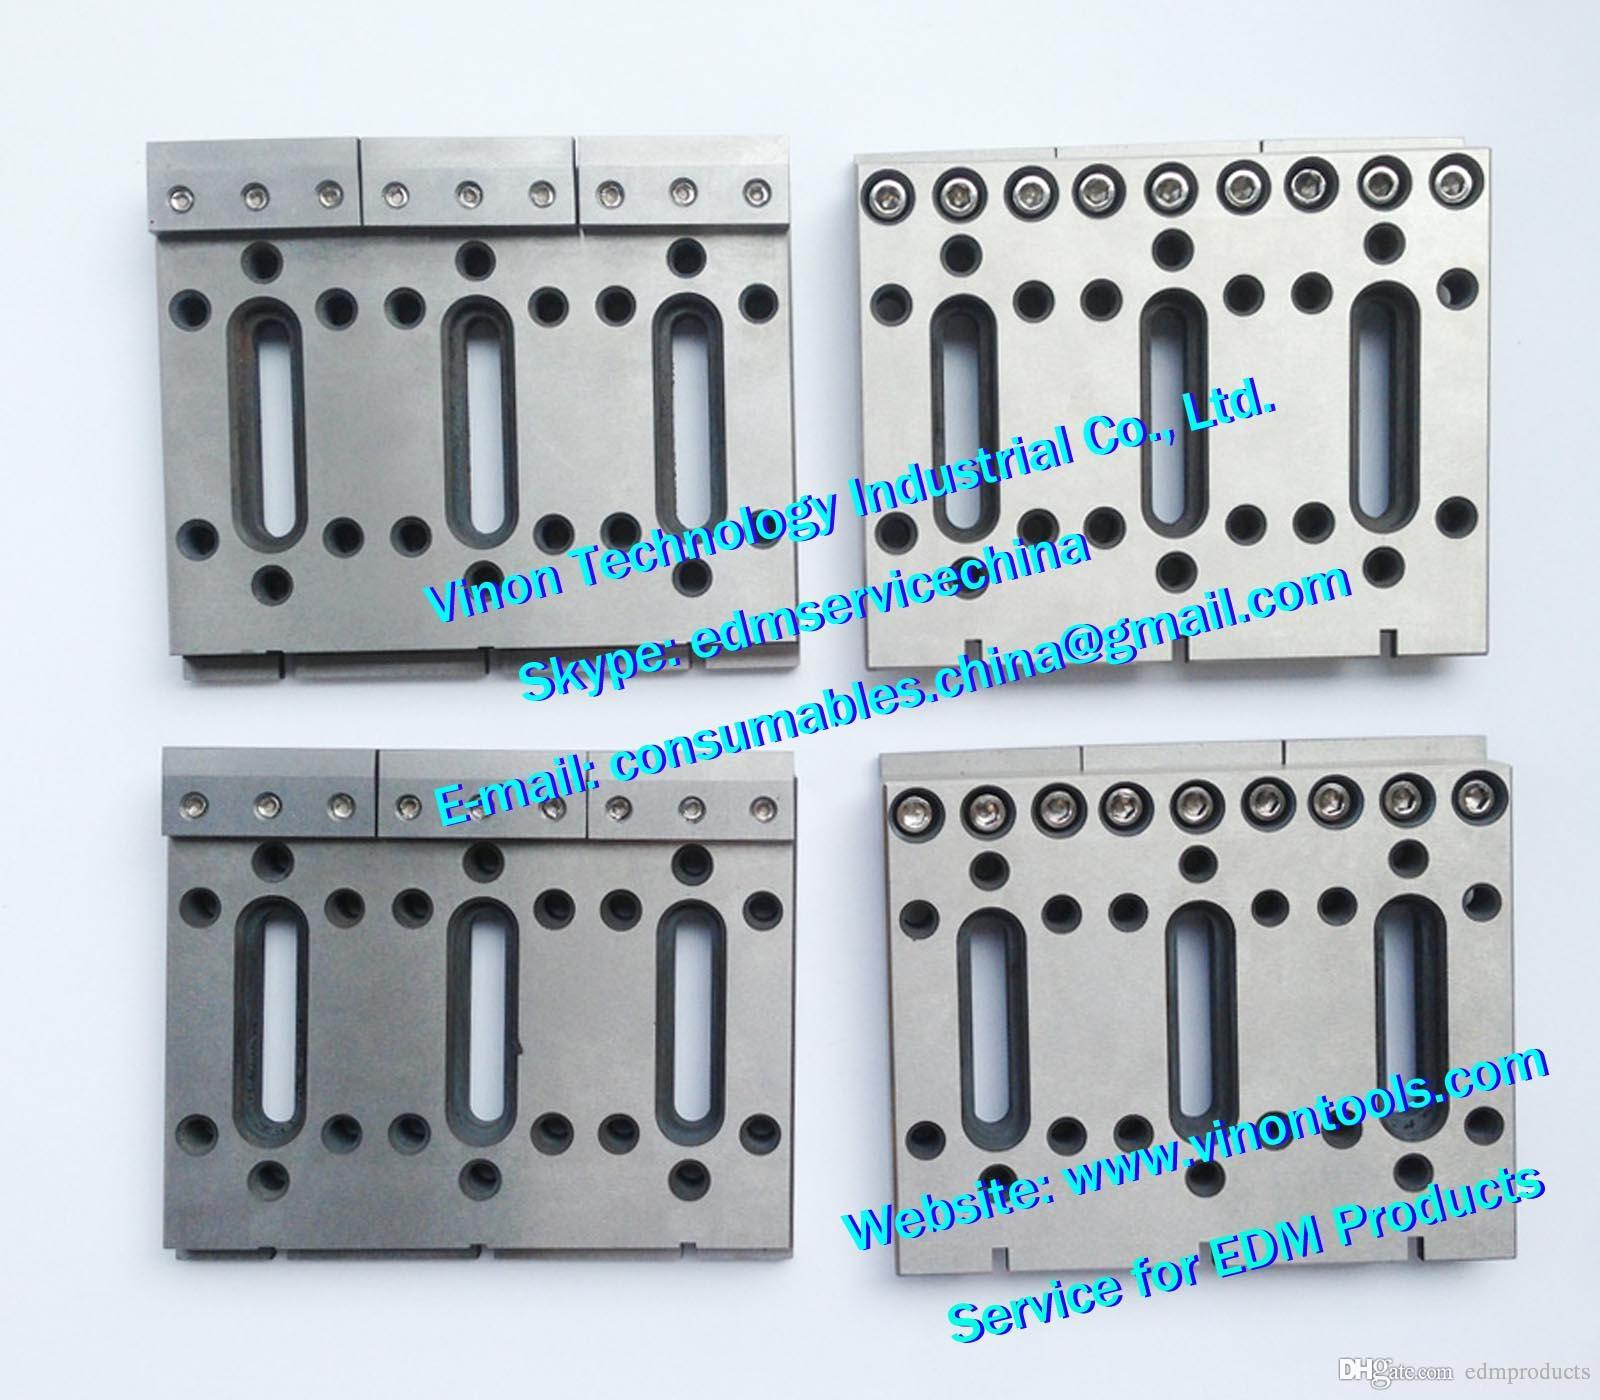 2018 Z026 Edm Jig Tools 150wx120lx15tmm For Wire Cut Edm Machines ...